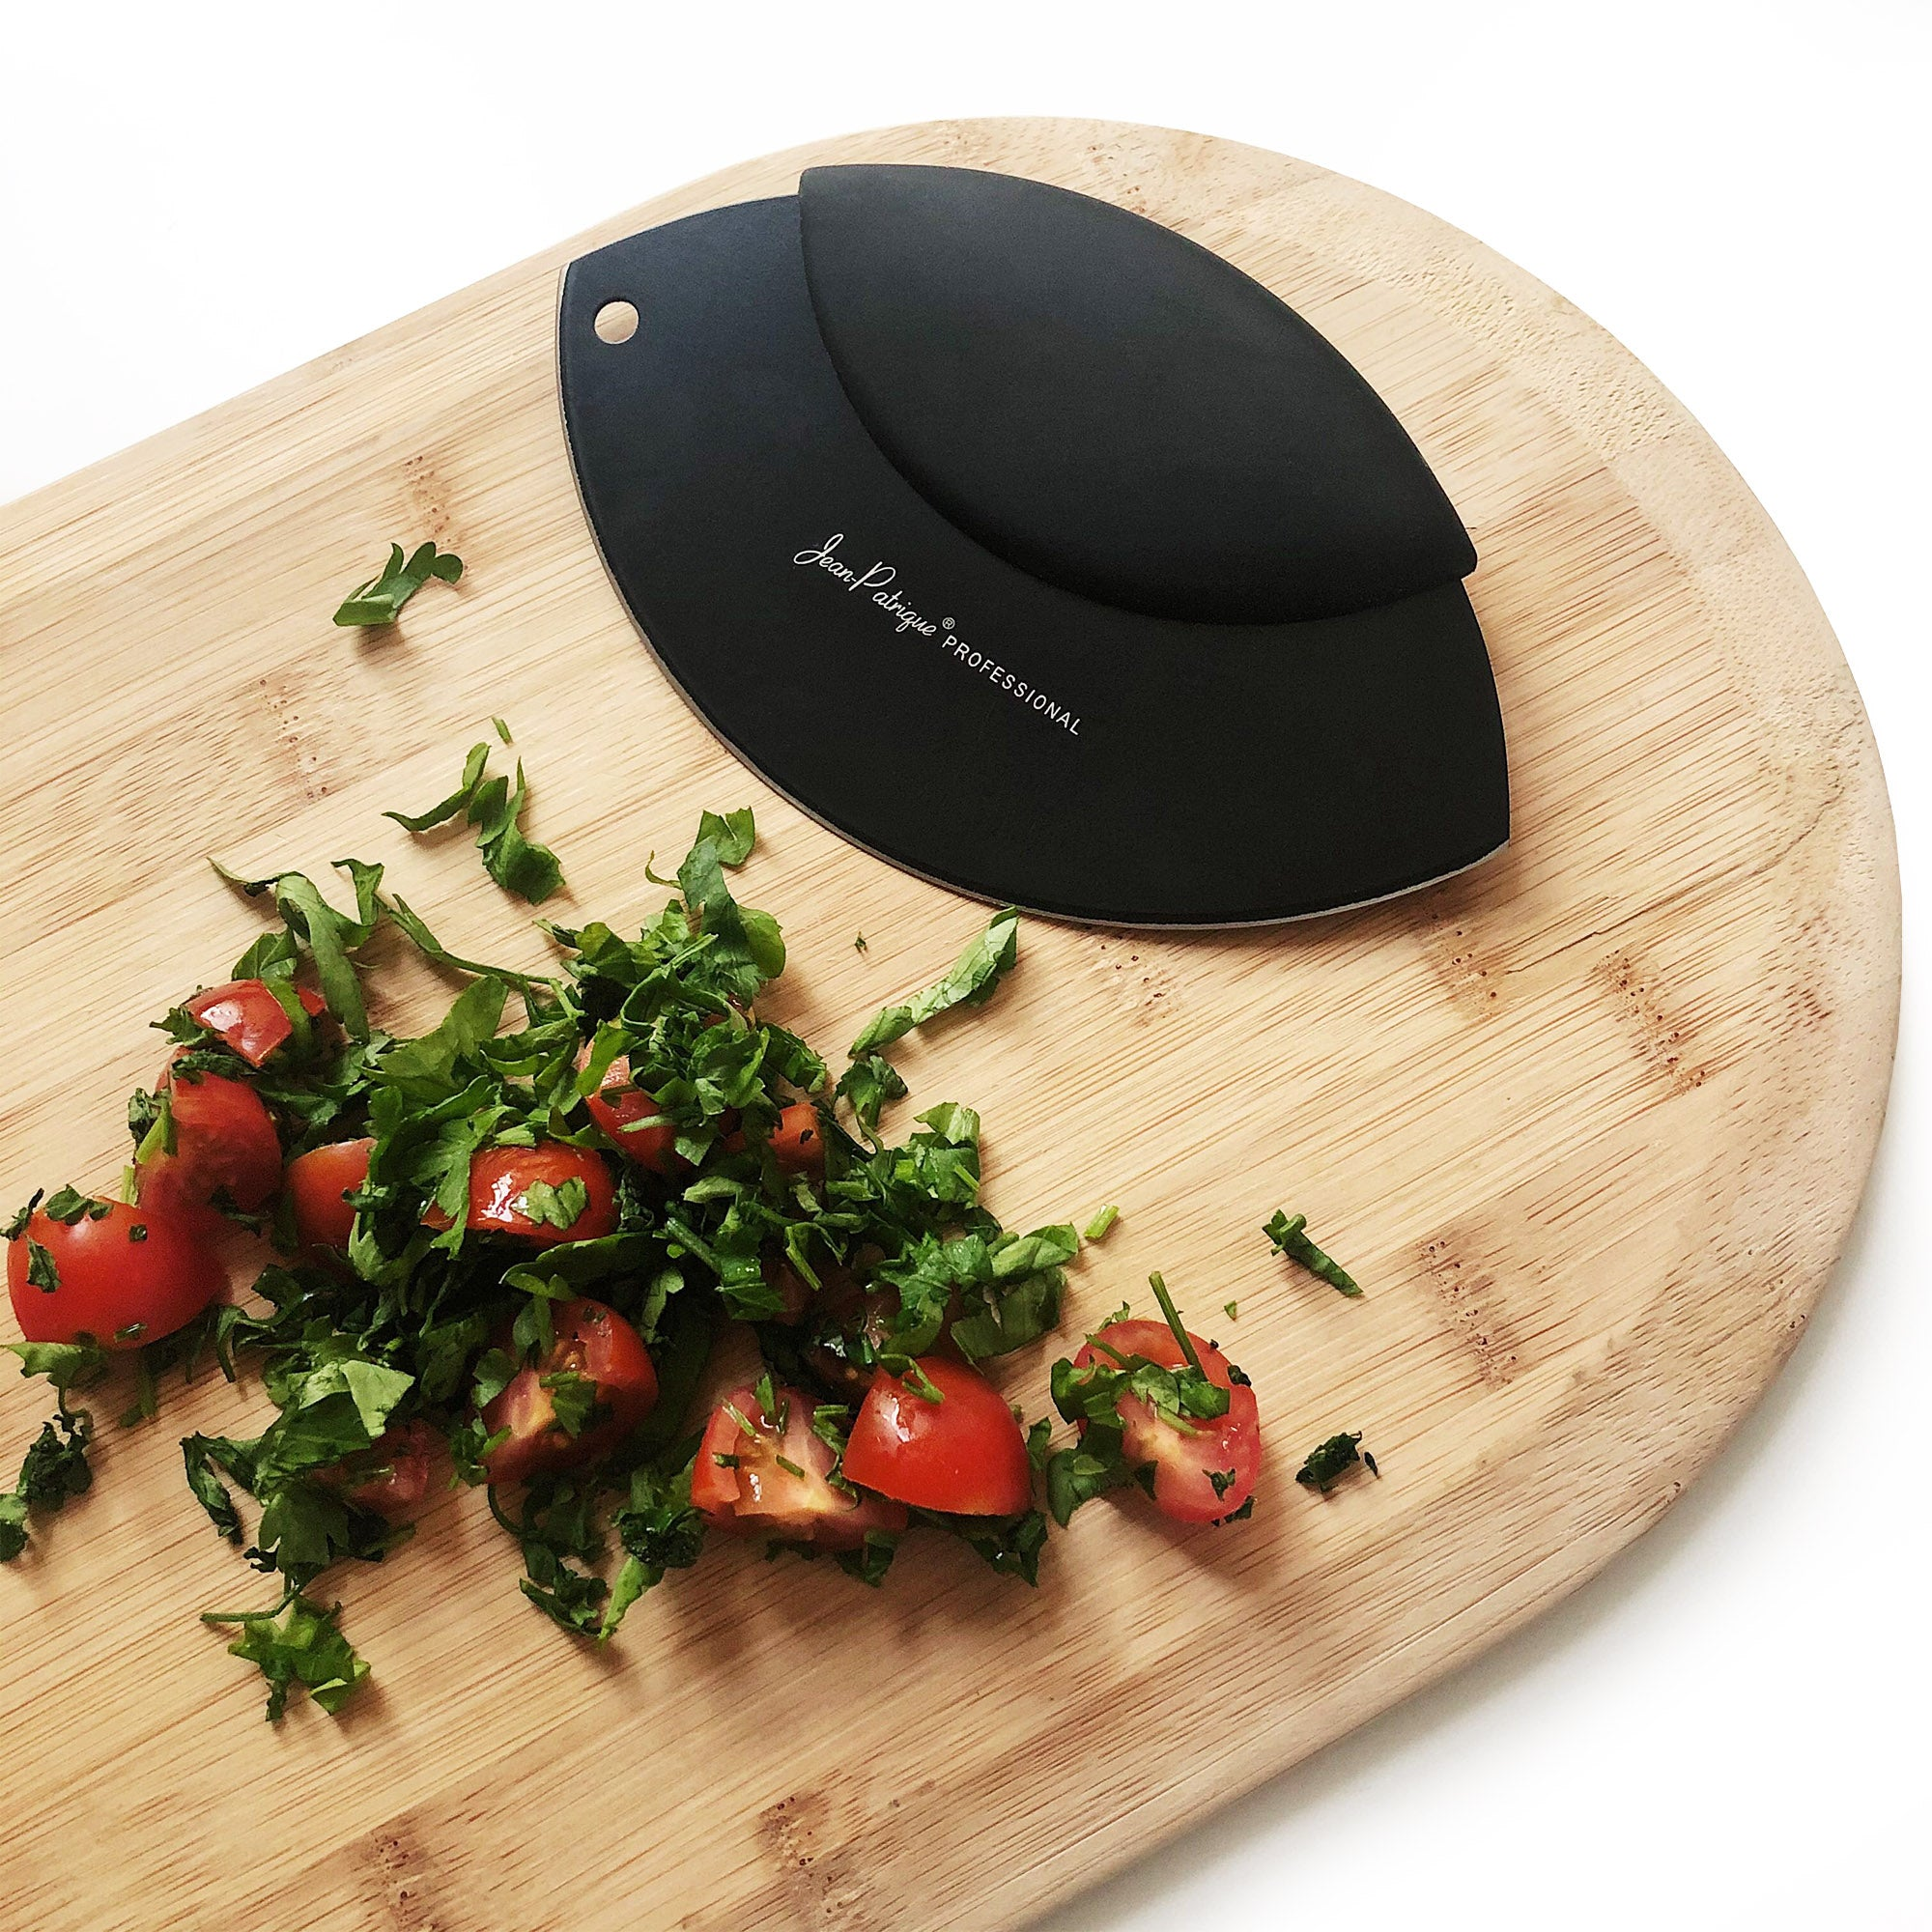 Excalibur Mezzaluna Herb & Salad Chopper